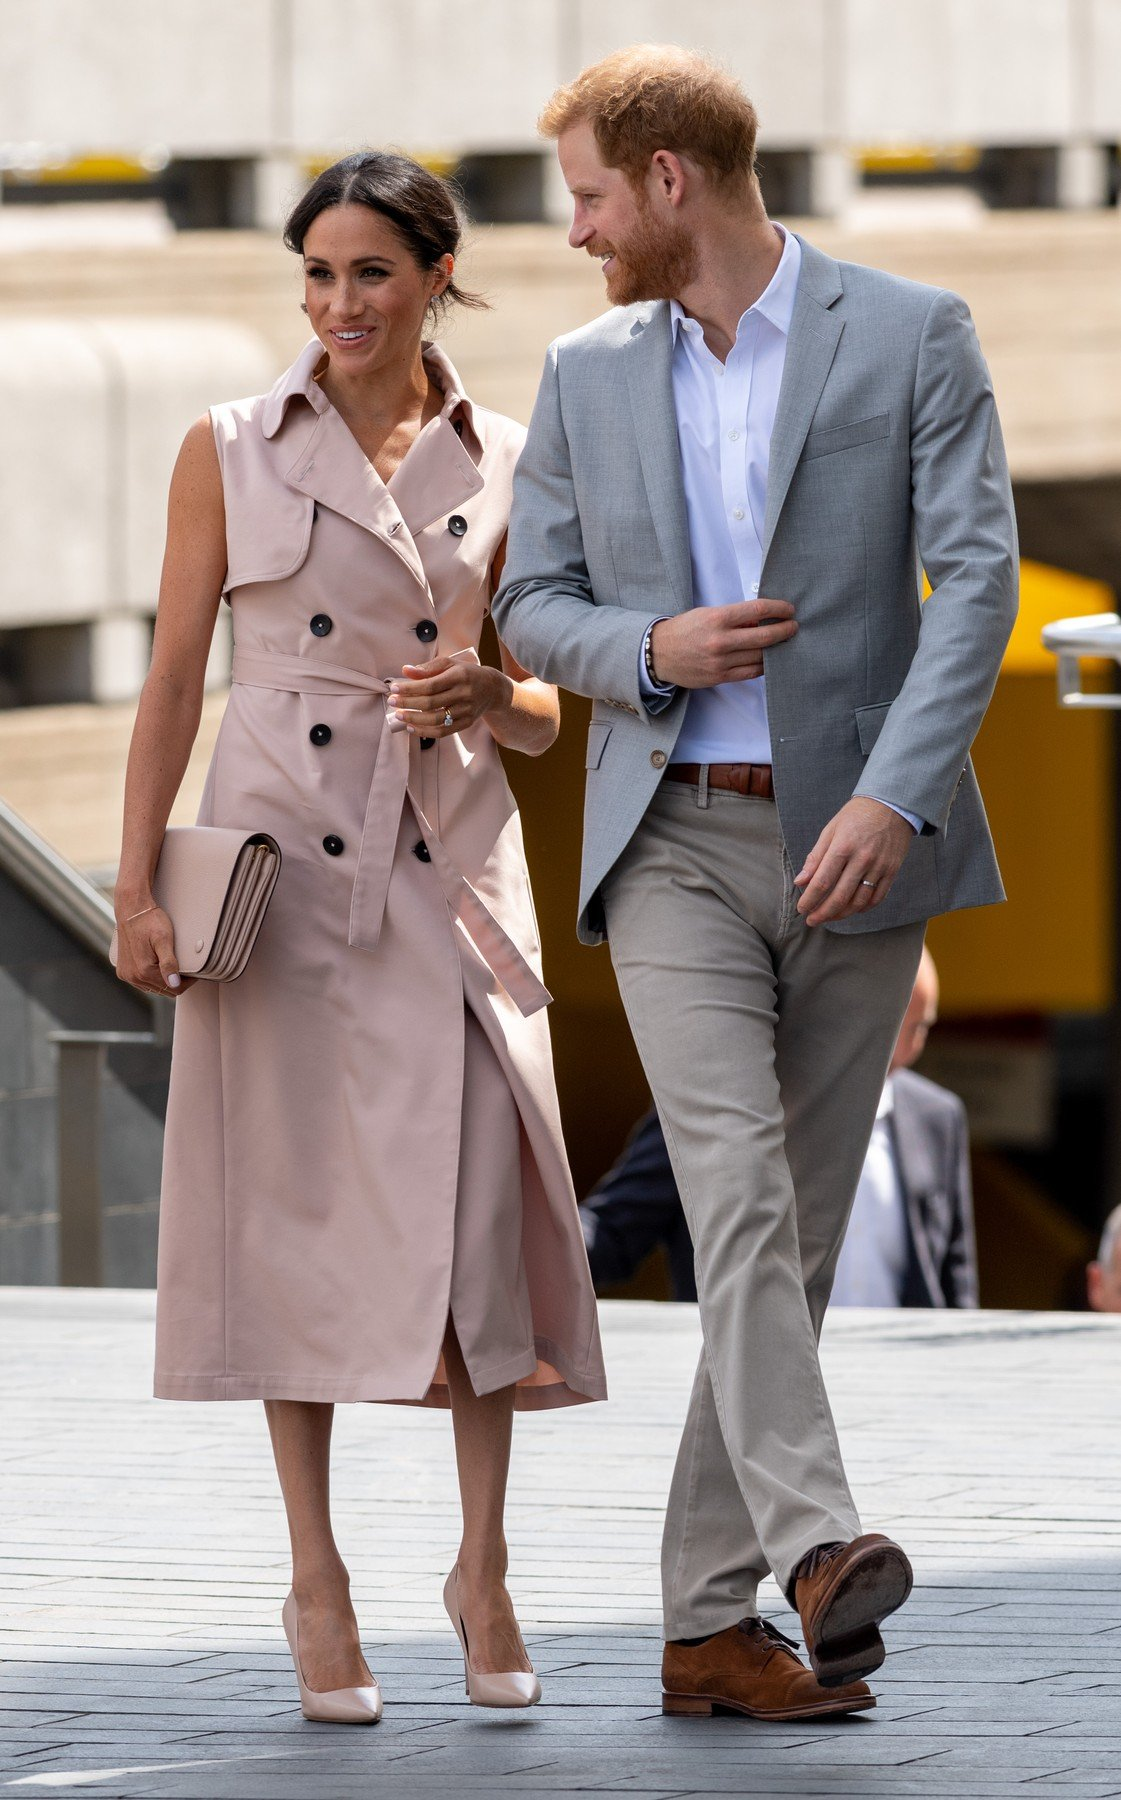 17 July 2018.  Prince Harry, Duke of Sussex and Meghan, Duchess of Sussex visit The Nelson Mandela Centenary Exhibition at Southbank Centre in London., Image: 378092645, License: Rights-managed, Restrictions: , Model Release: no, Credit line: Profimedia, Goff Photos